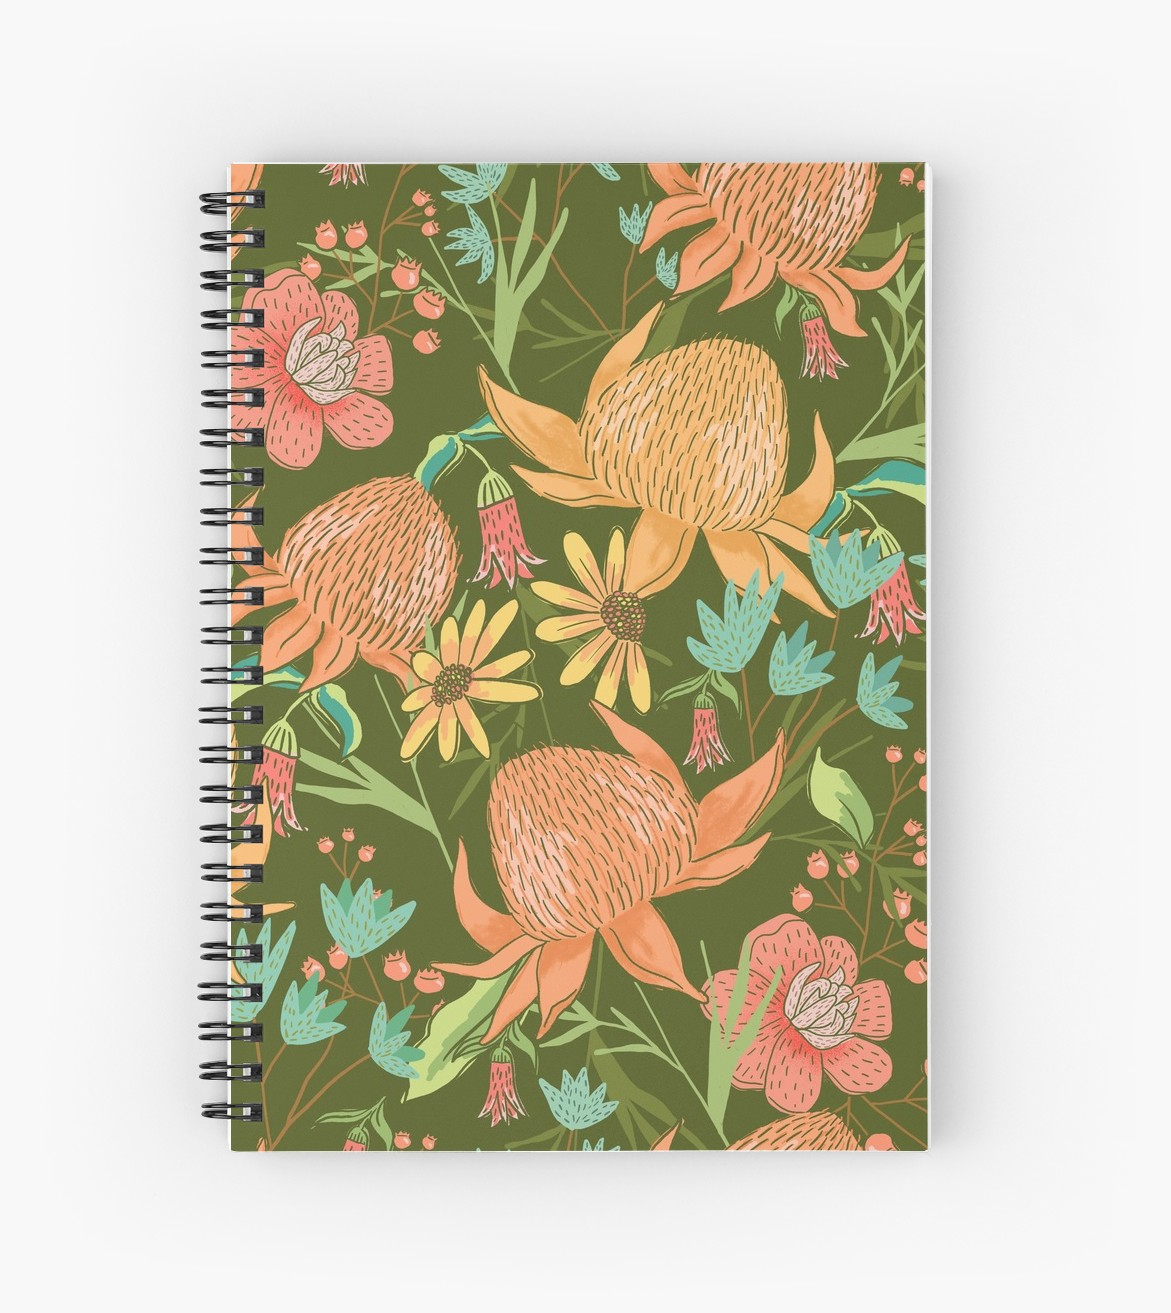 Notebooks are great for bullet journals, drawing, writing, school, keeping yourself organized daily love the pretty flowers all of this patterned notebook from Redbubble